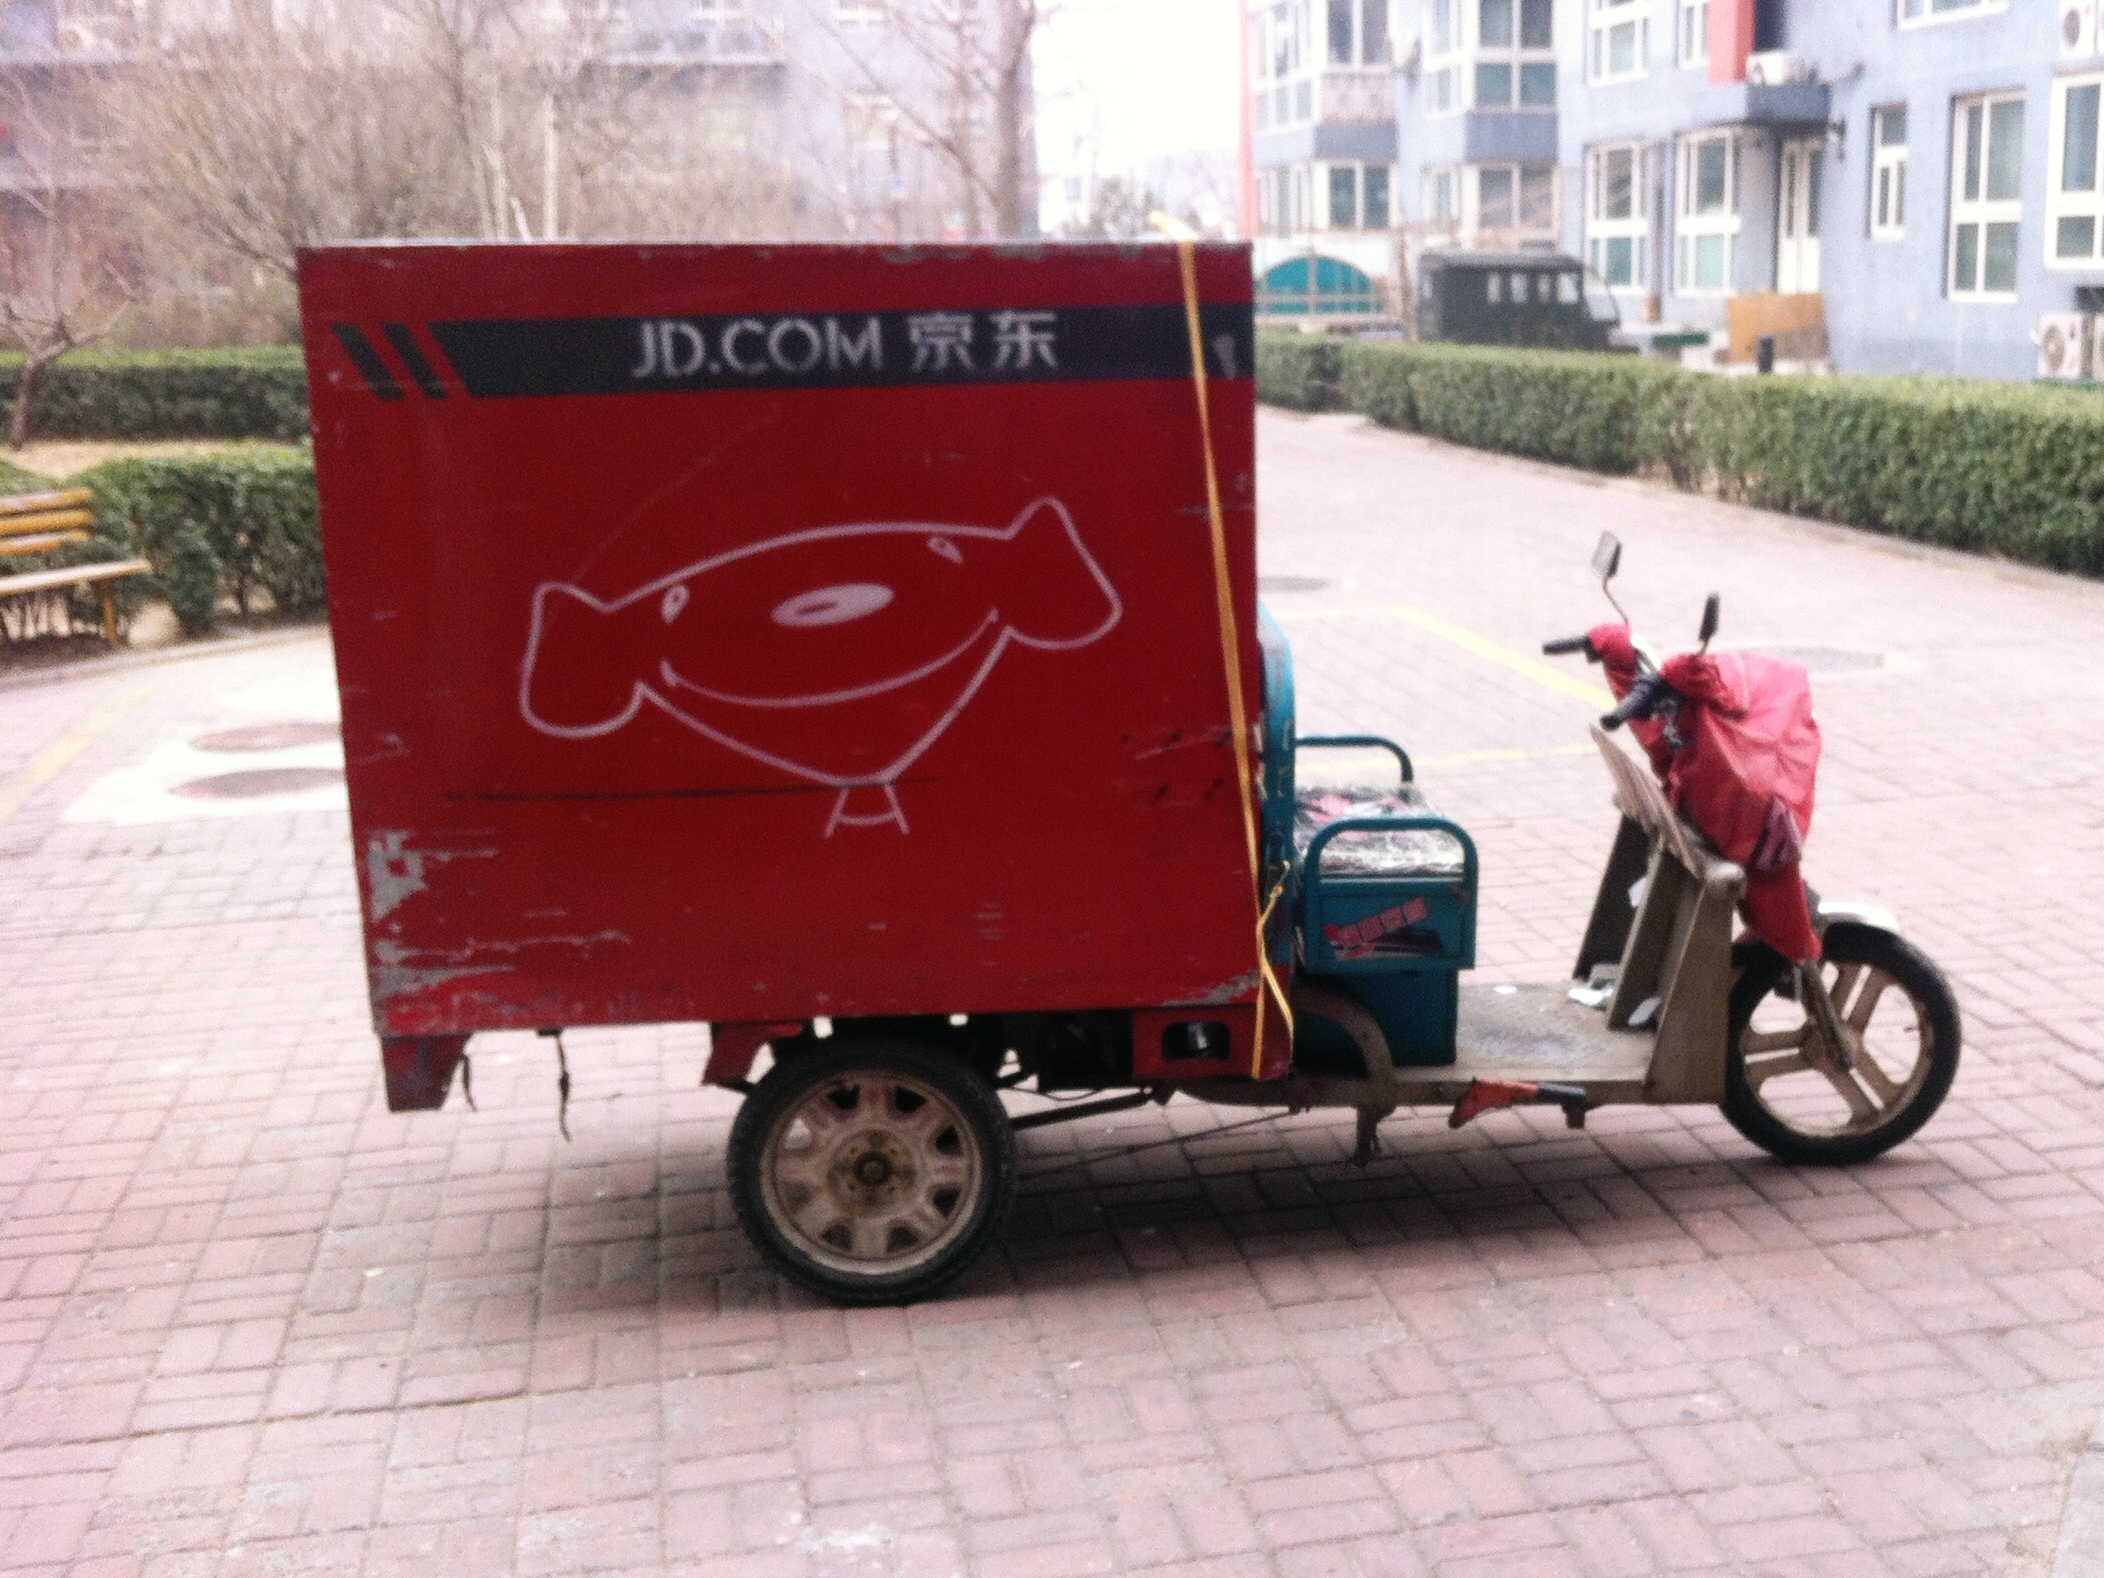 techcrunch.com - Jon Russell - China's JD.com teams up with Intel to develop 'smart' retail experiences